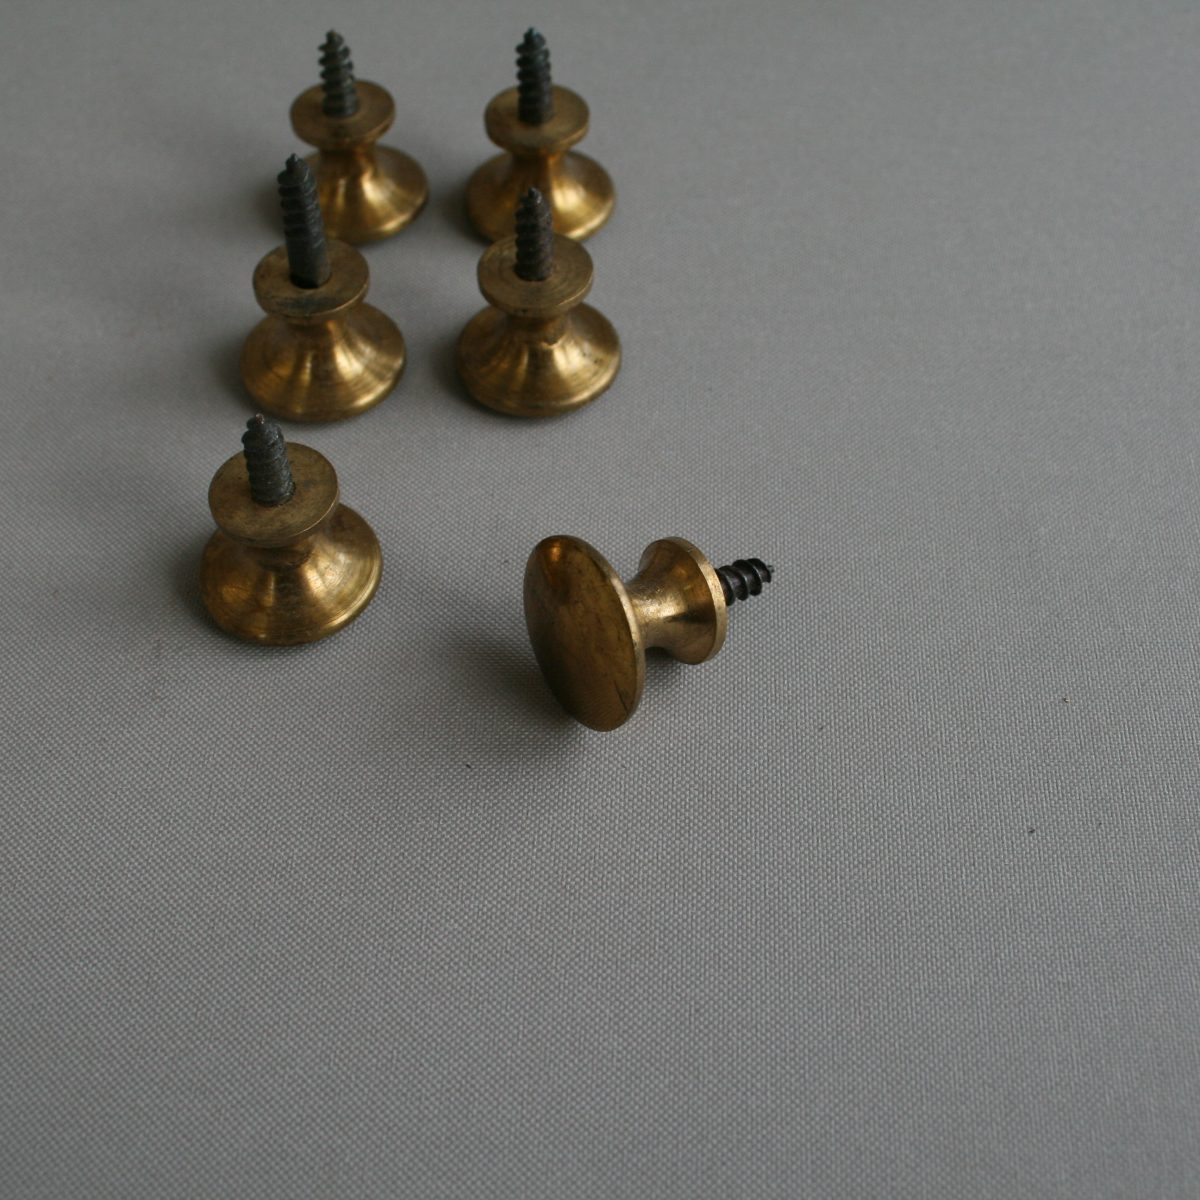 antique brass knob handles /williamsantiques